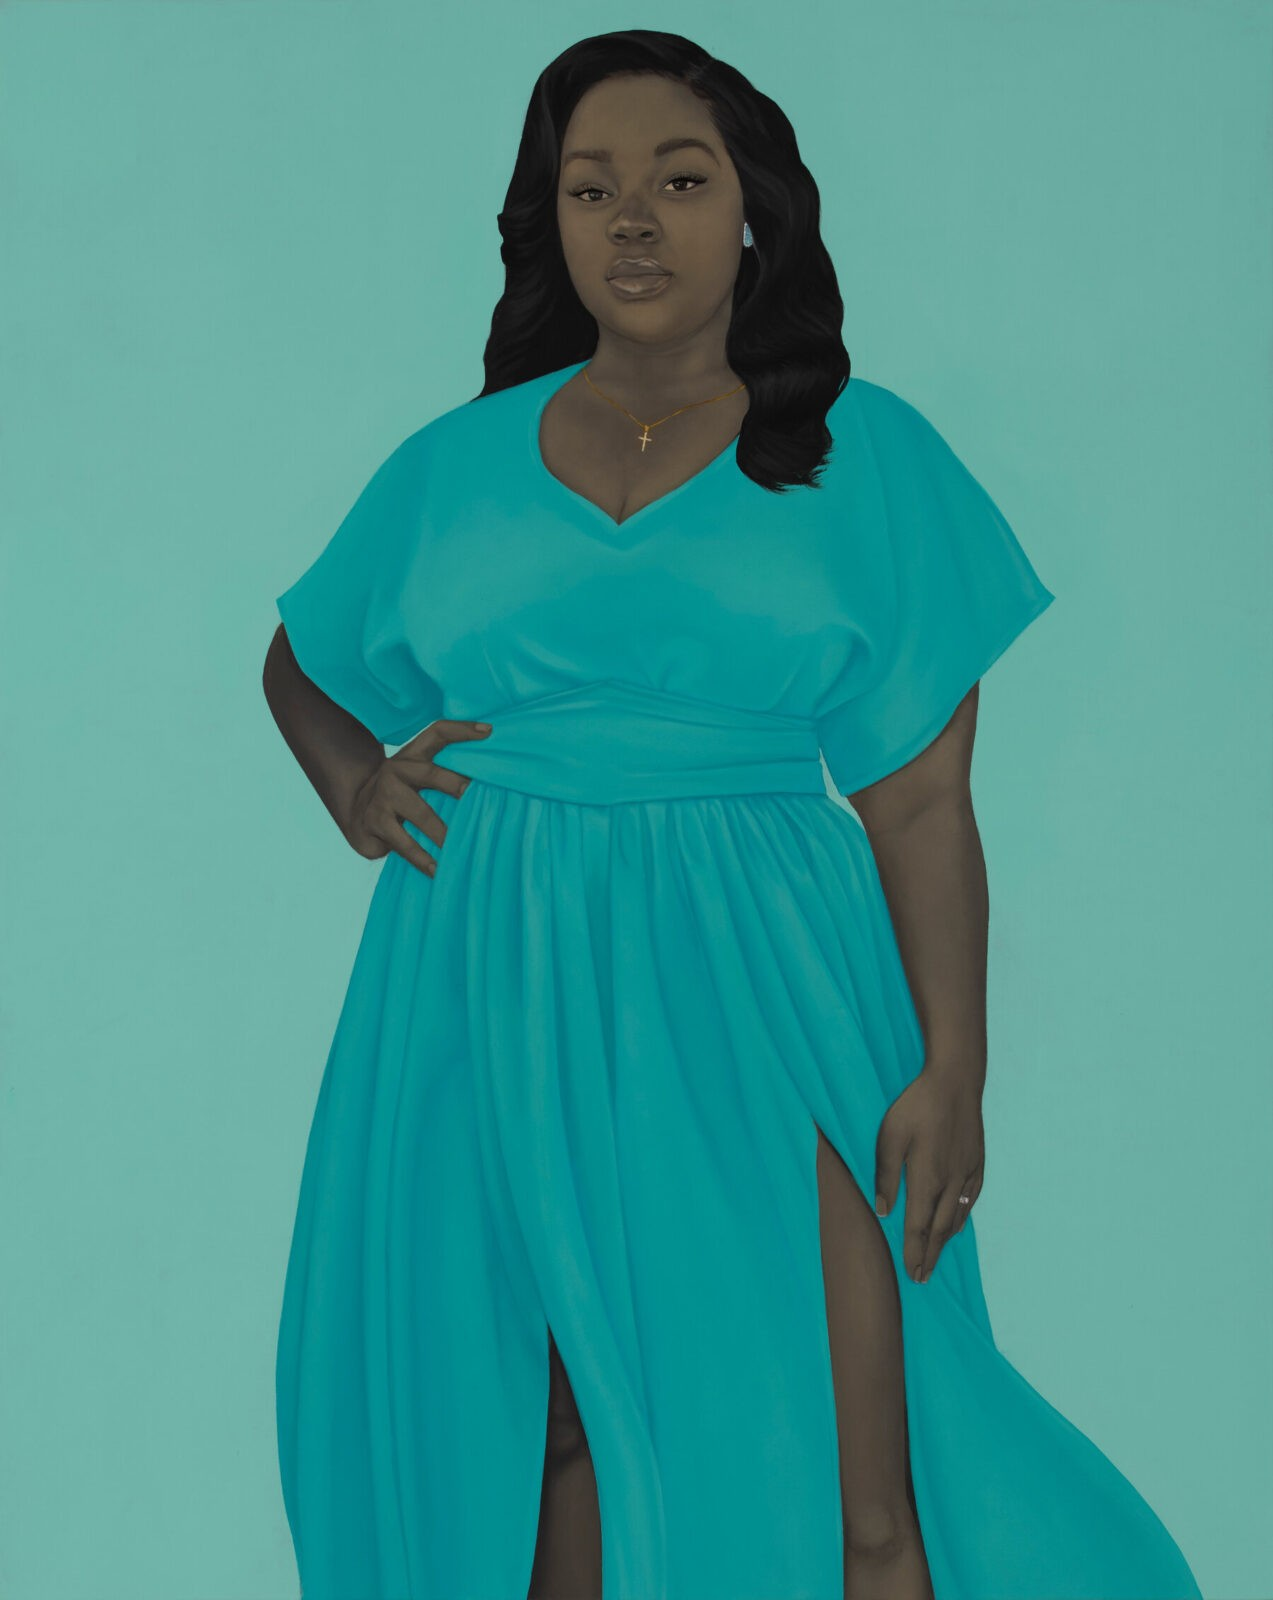 Museum show honoring Breonna Taylor